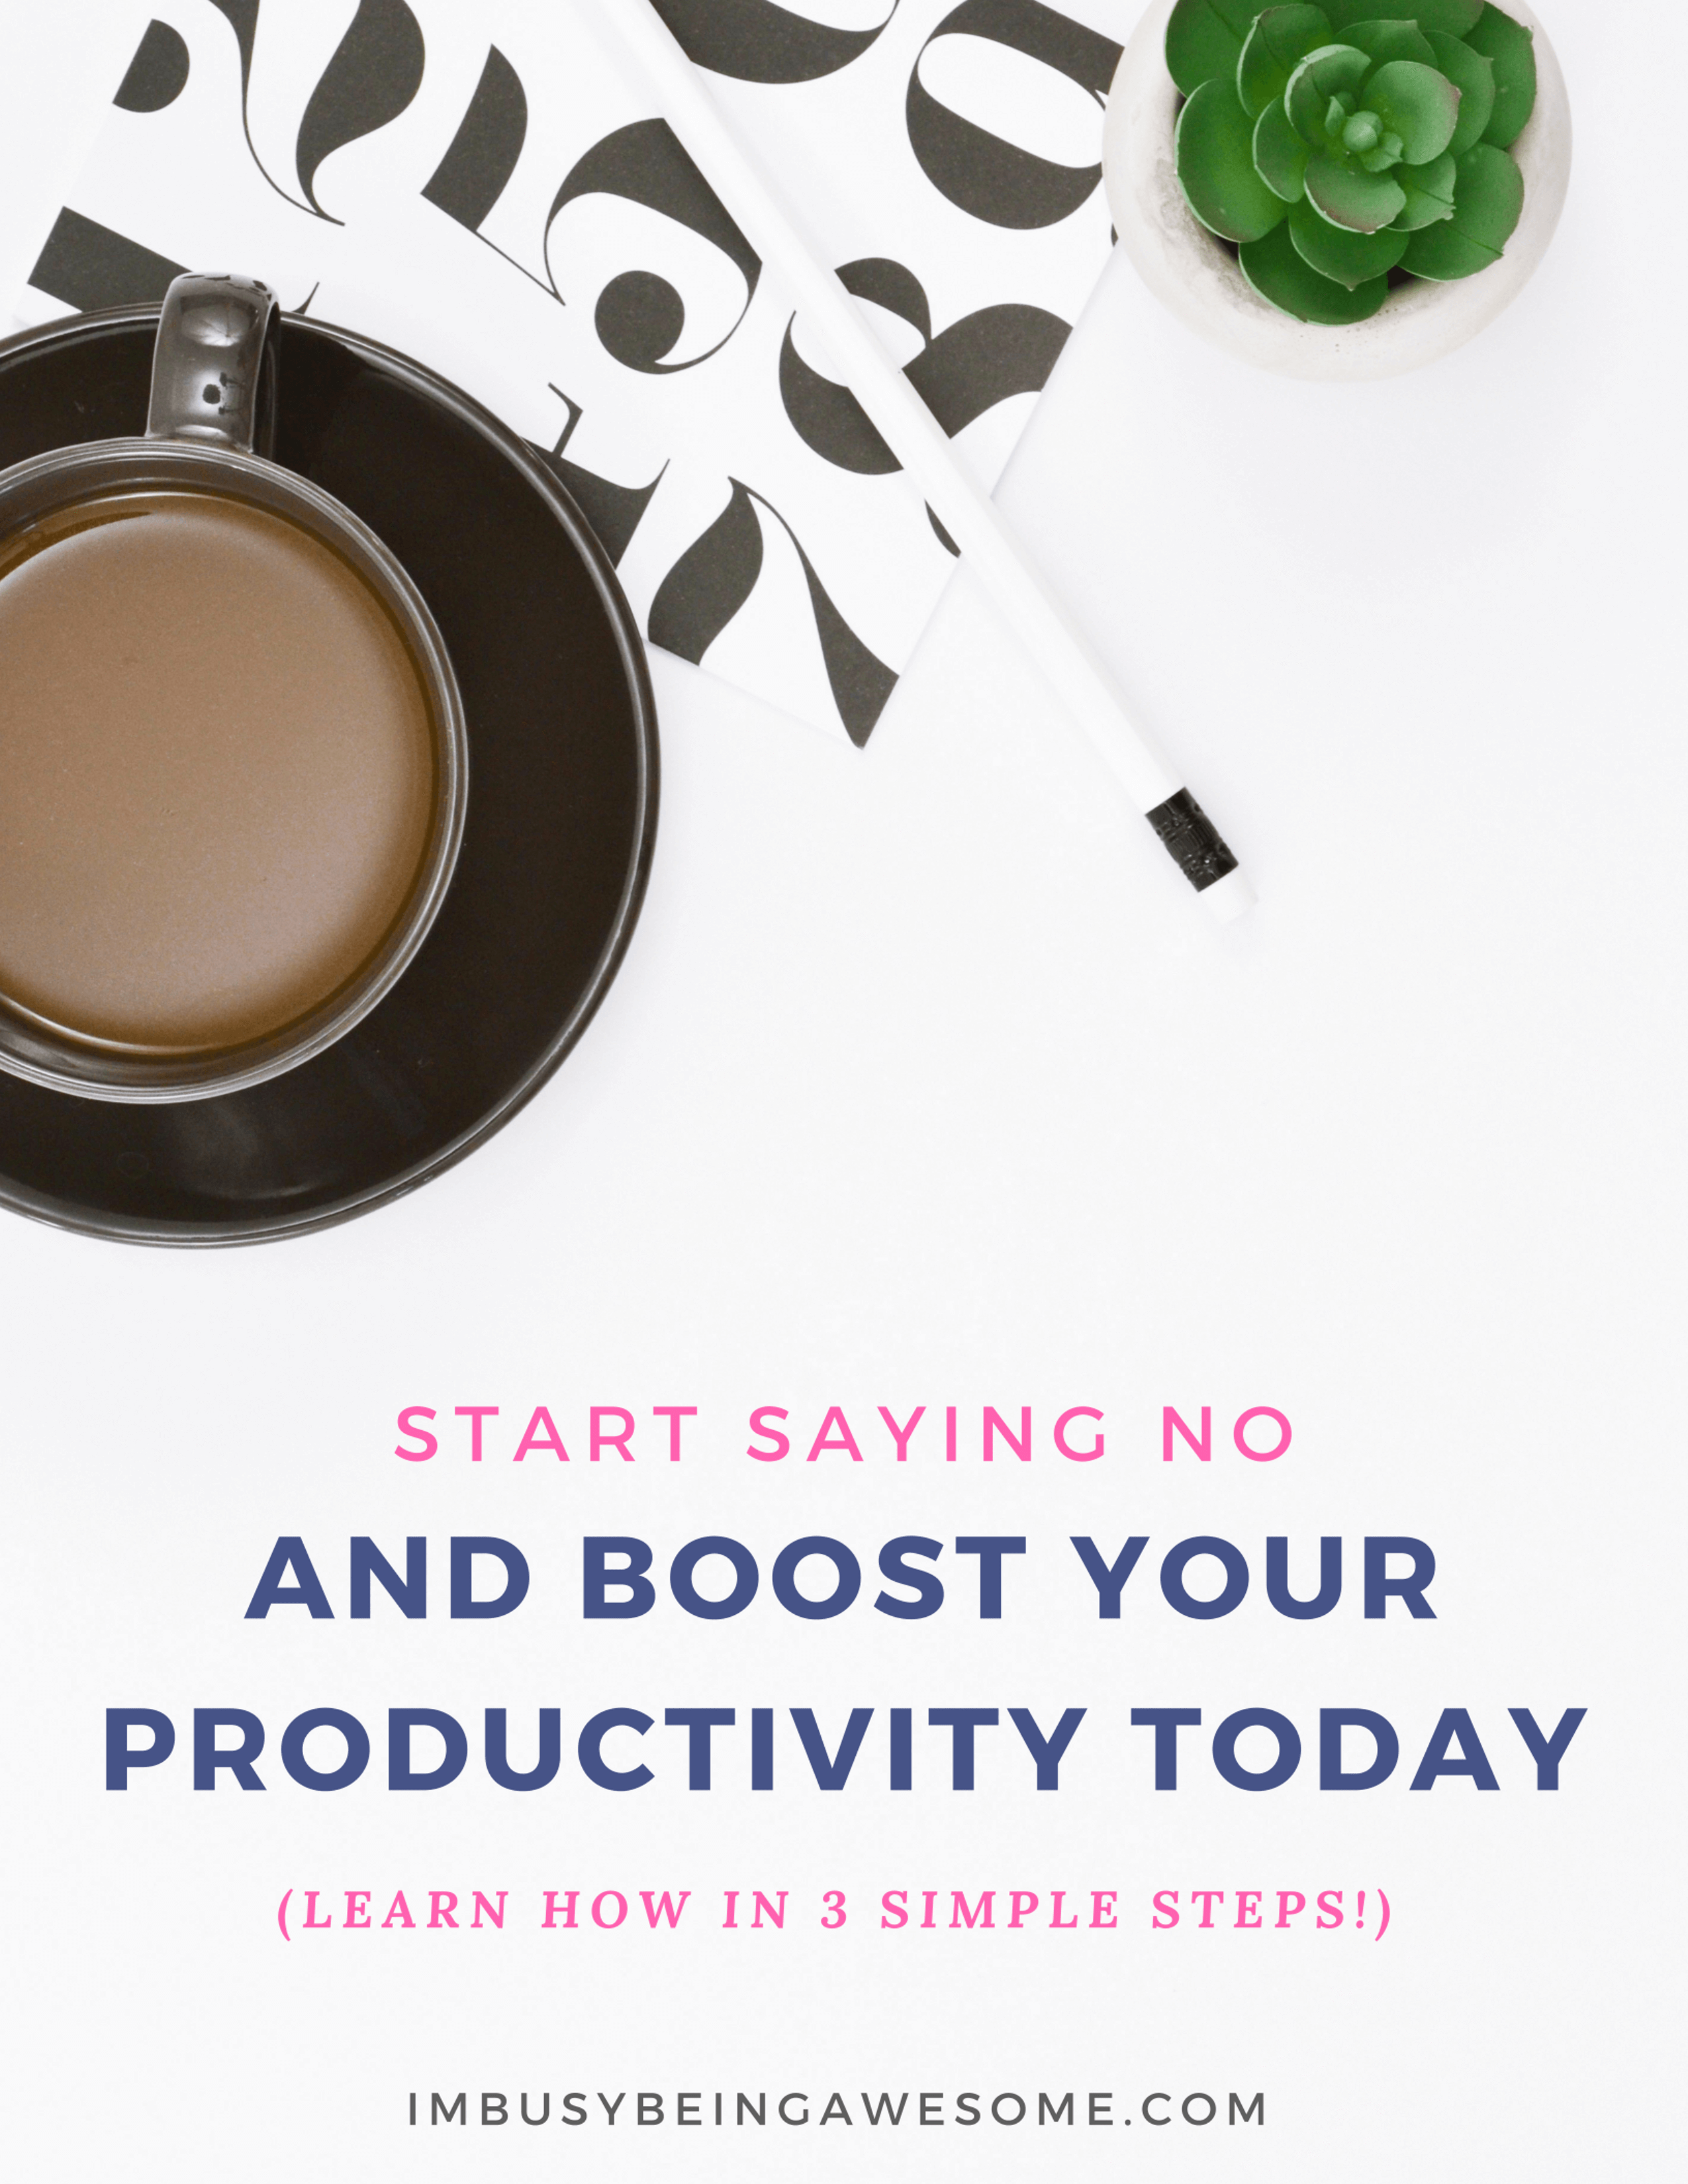 increase your productivity by saying no. how to boost your productivity, how to say no, how to say no politely, how to increase productivity, how to get more done, how to find balance, how to find more time for work, how to find more time for self-care, how to find more time for friends, how to find more time for family, #happiness #productivity #success #entrepreneur #blogger #blogging #tipsandtricks #sayno